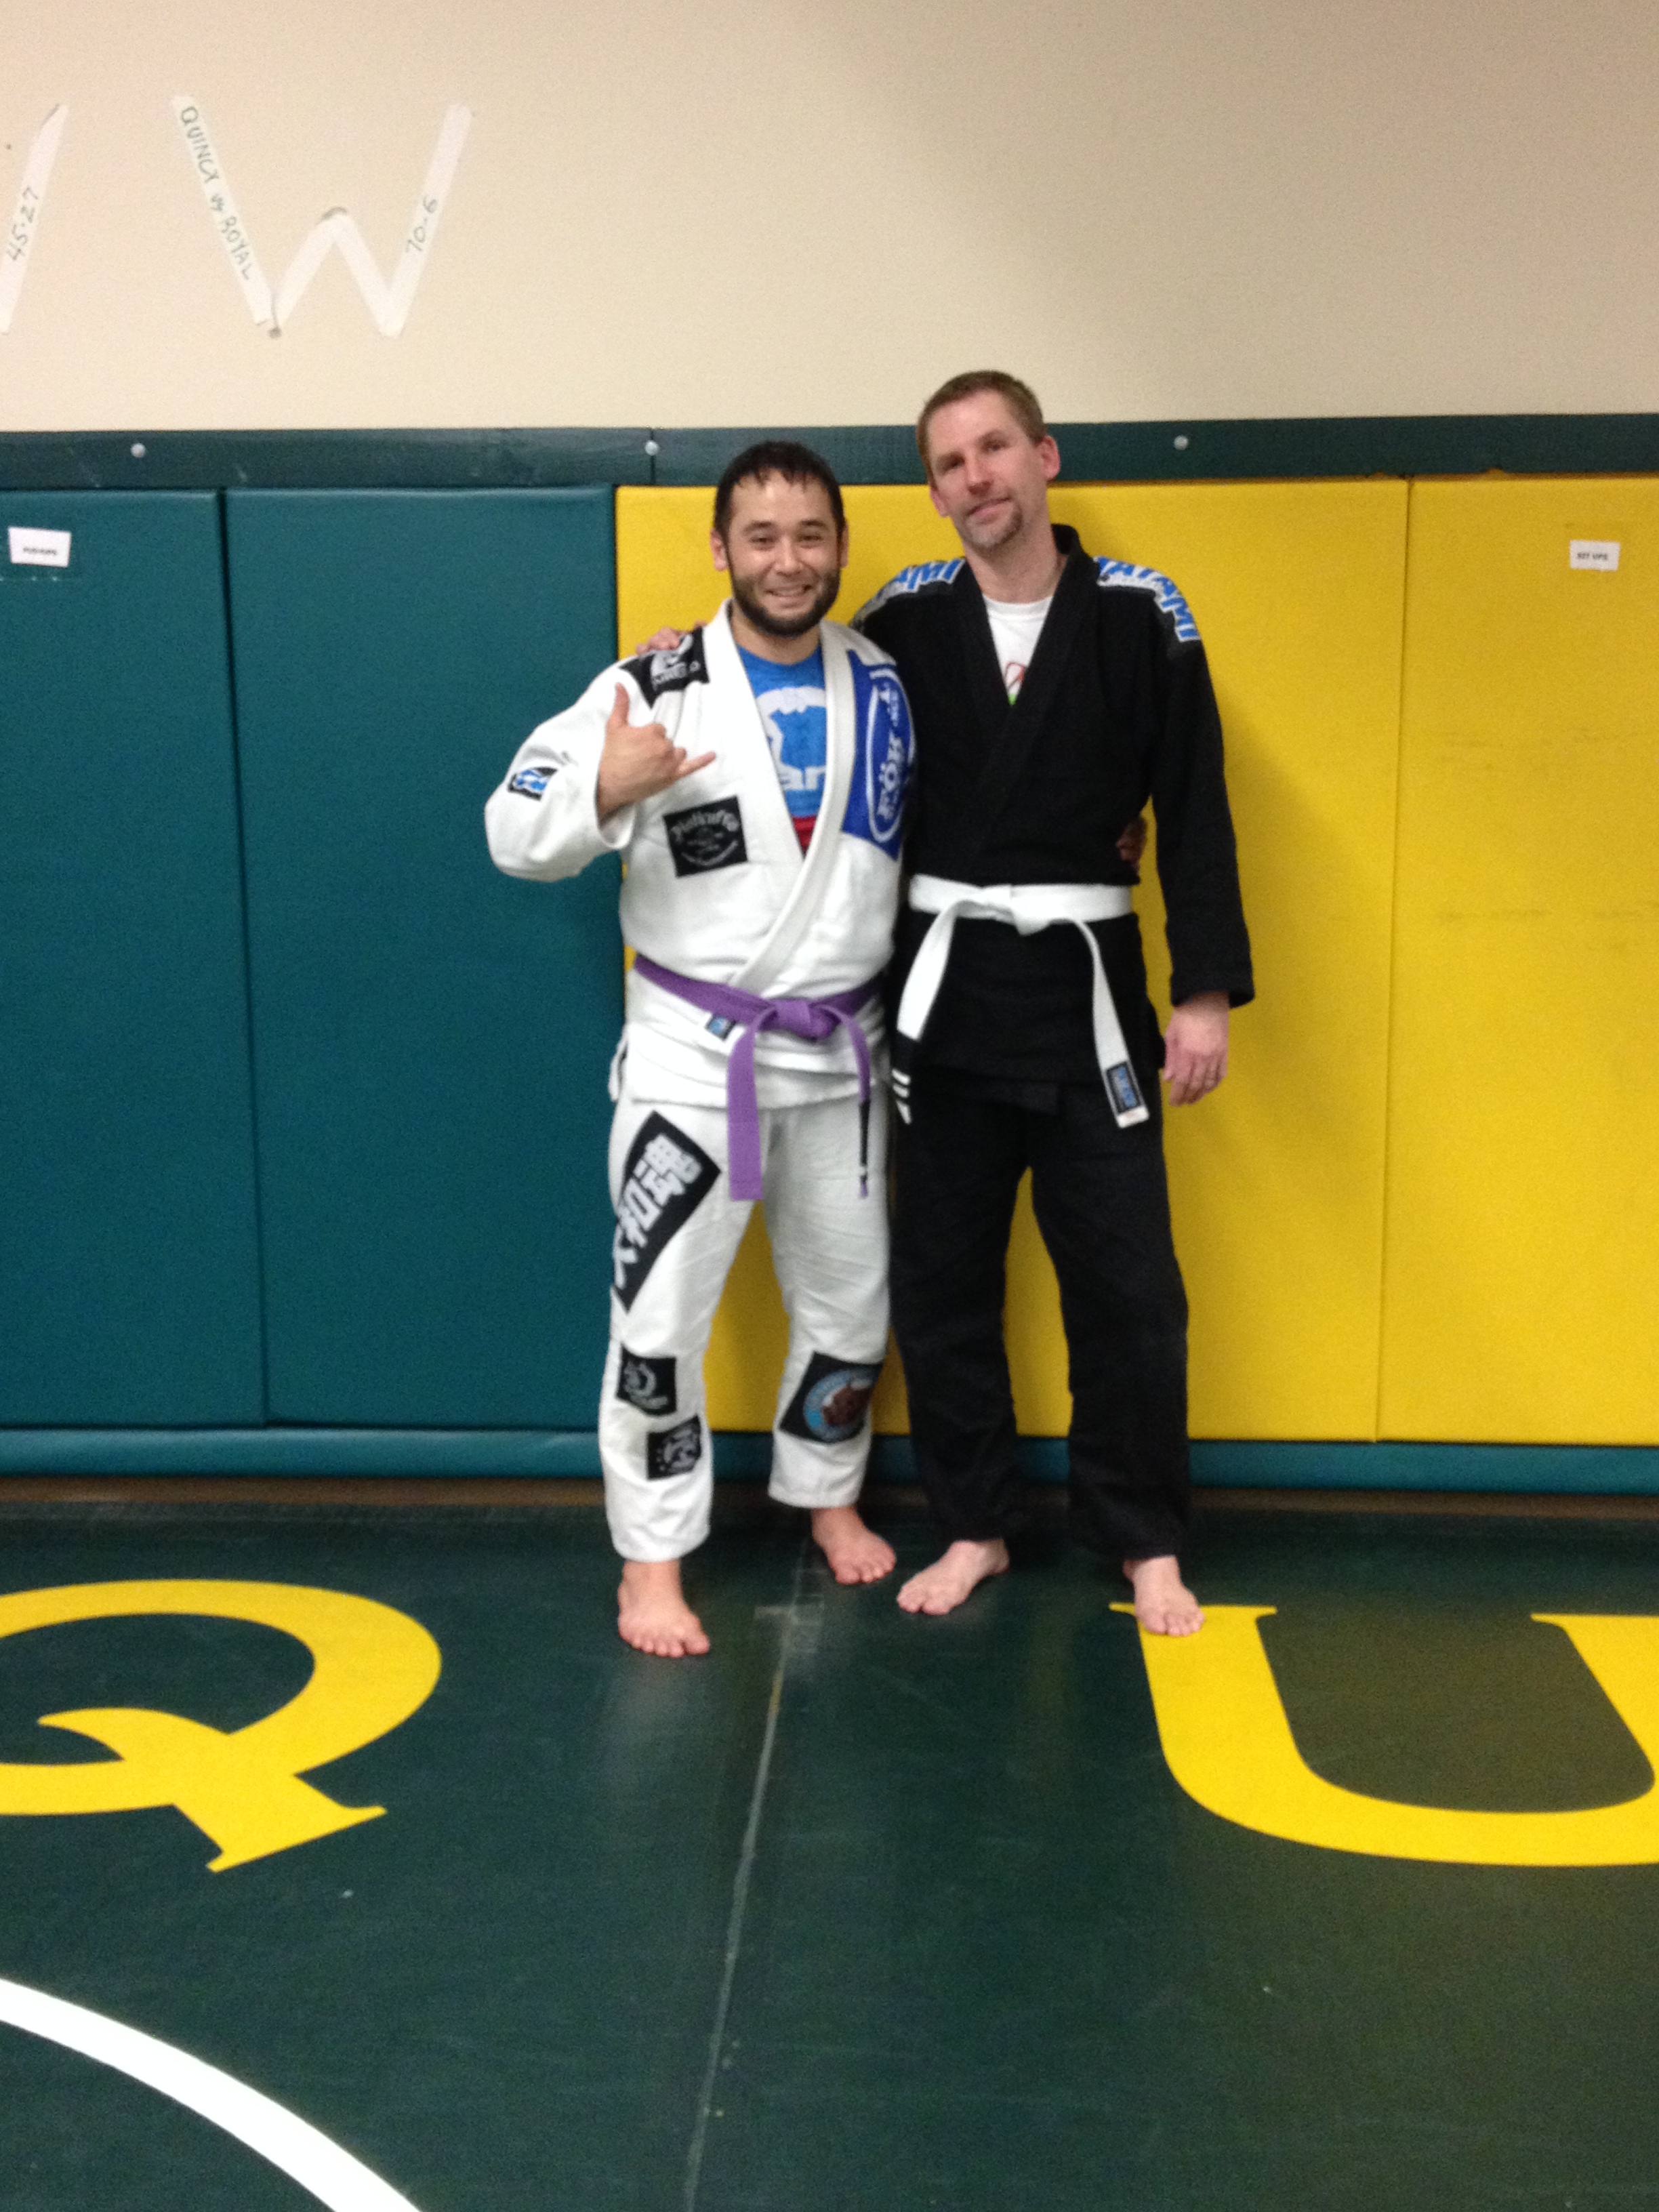 Congratulations to Shawn Highfill on getting his 2nd stripe!